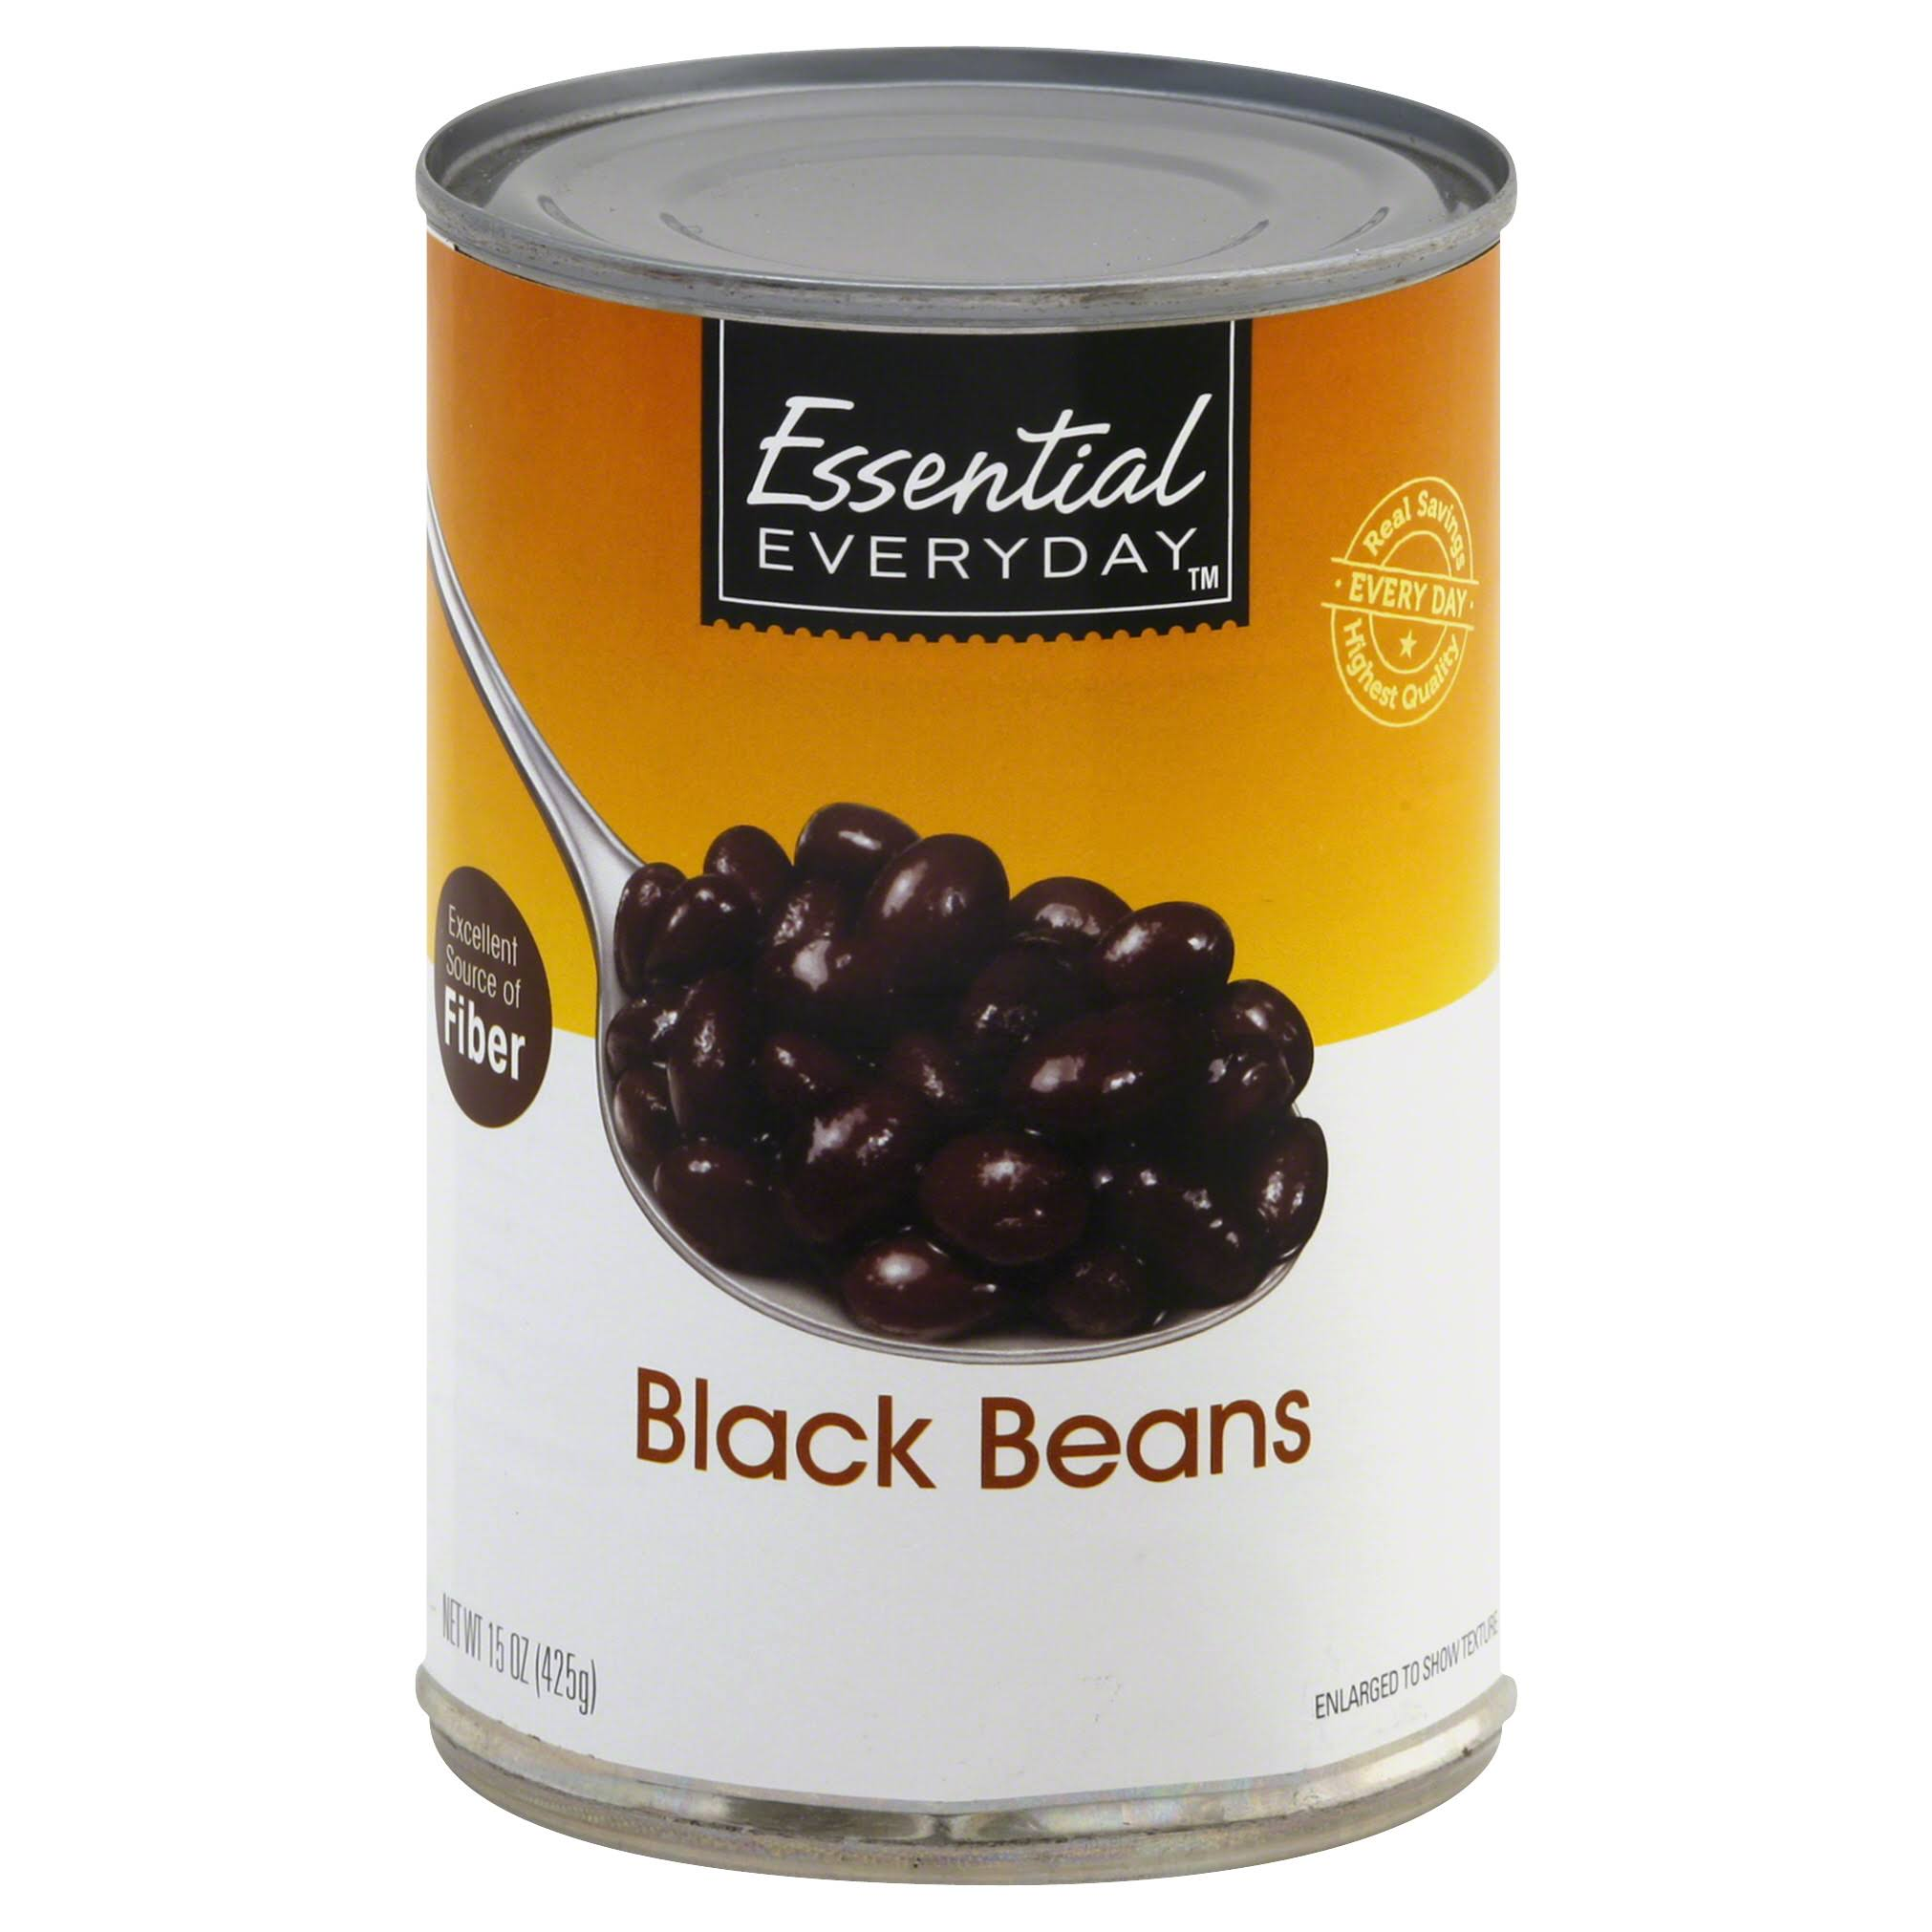 Essential Everyday Black Beans - 15 oz